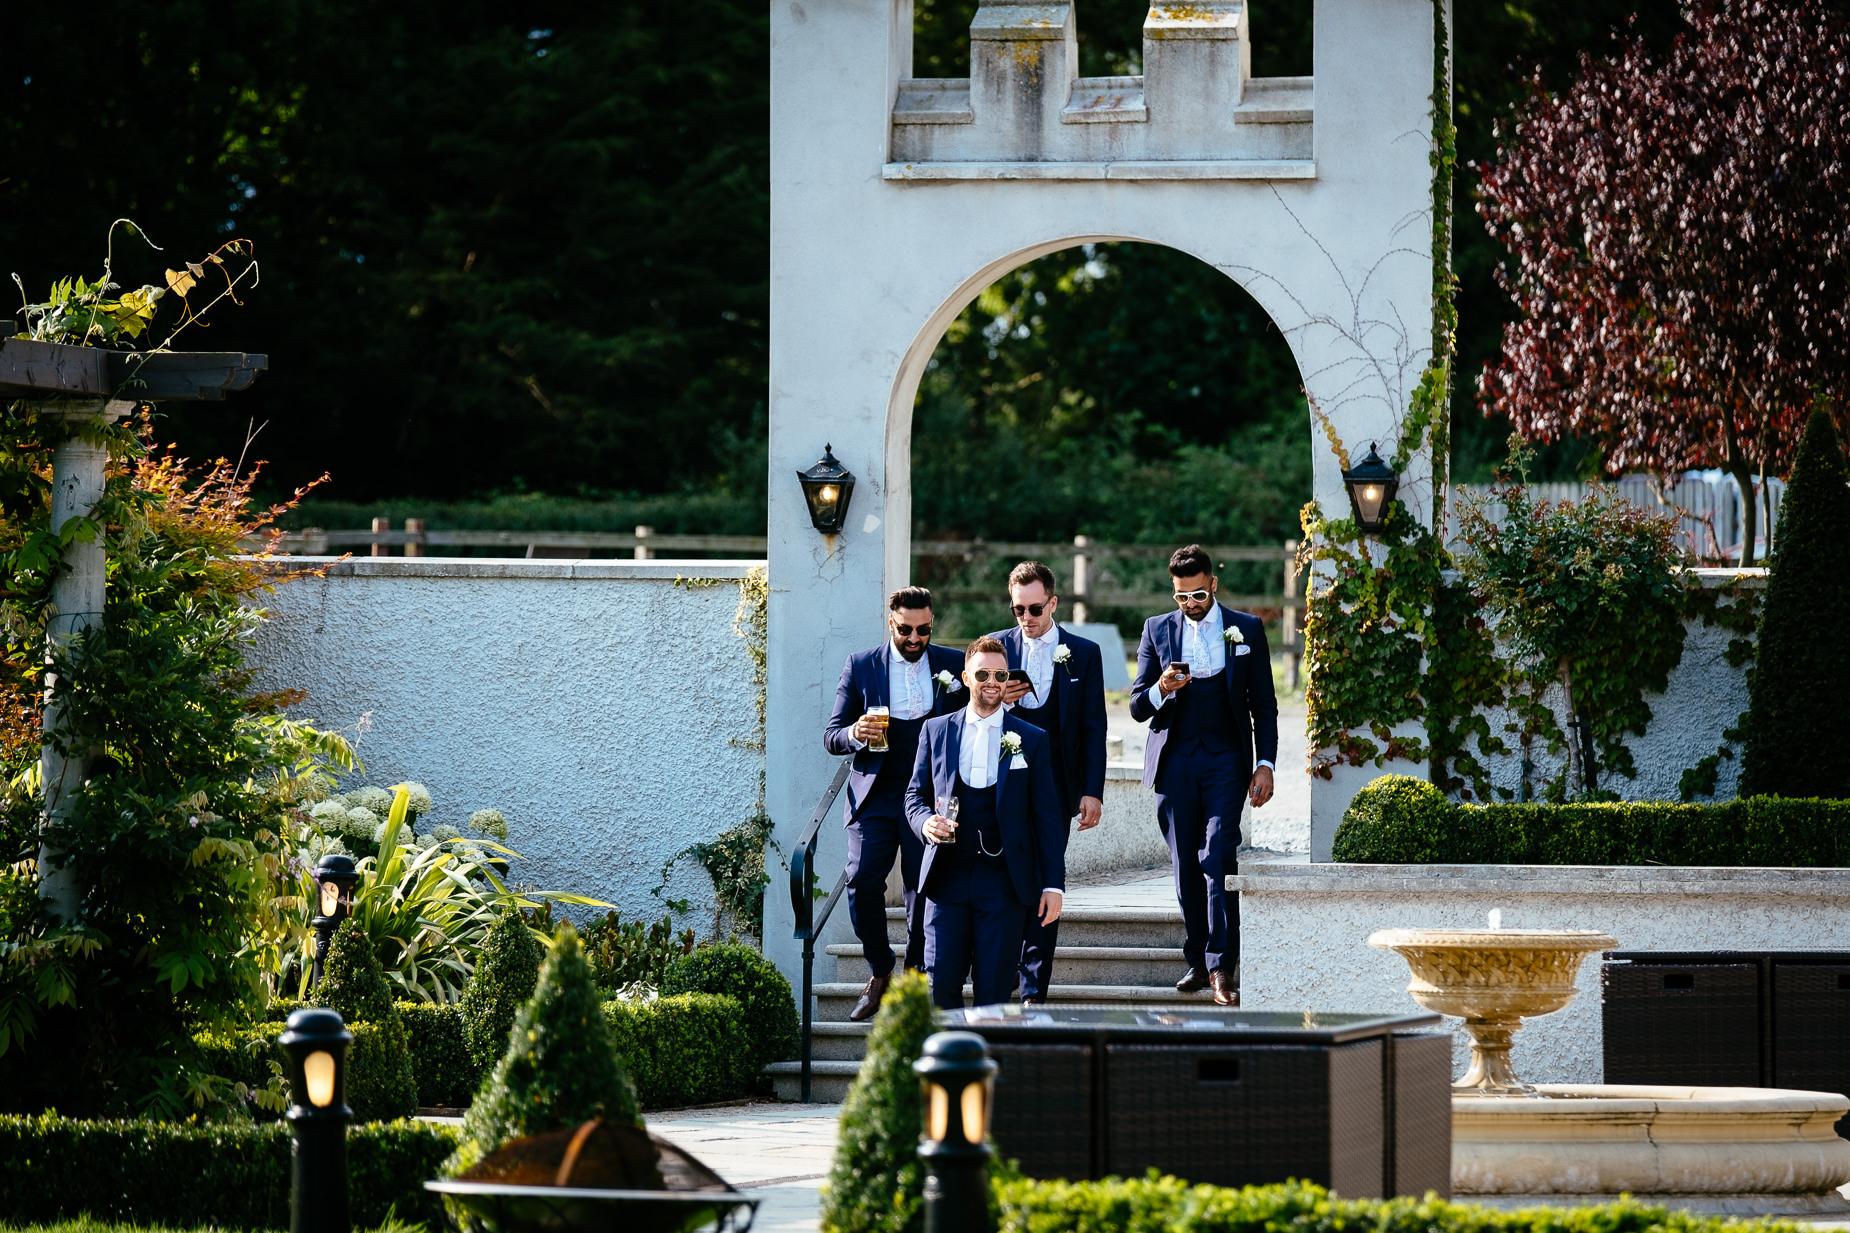 groomsmen walking through courtyard towards camera carrying drinks